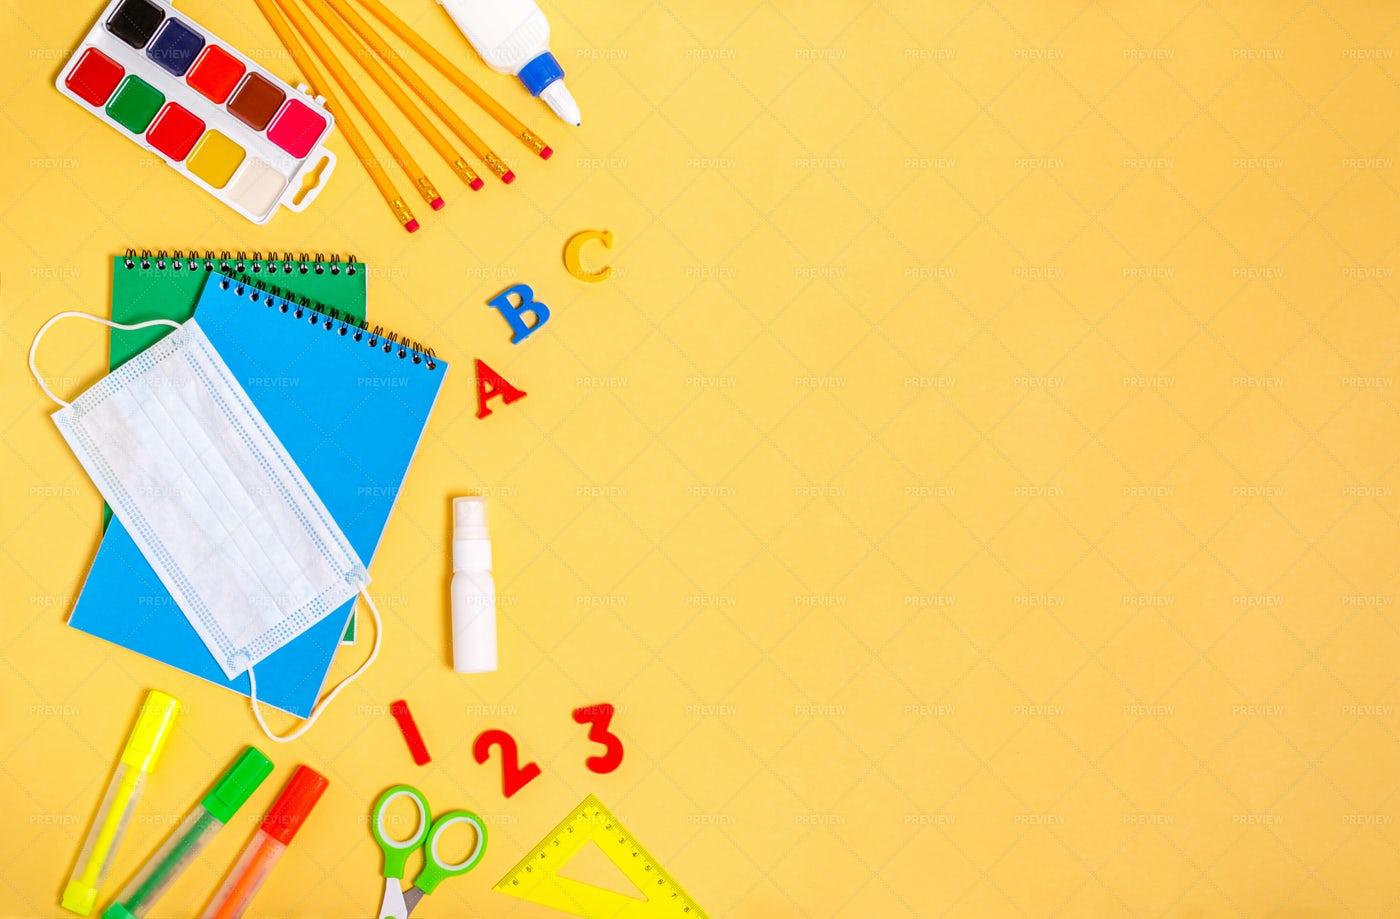 Various Stationery For School: Stock Photos